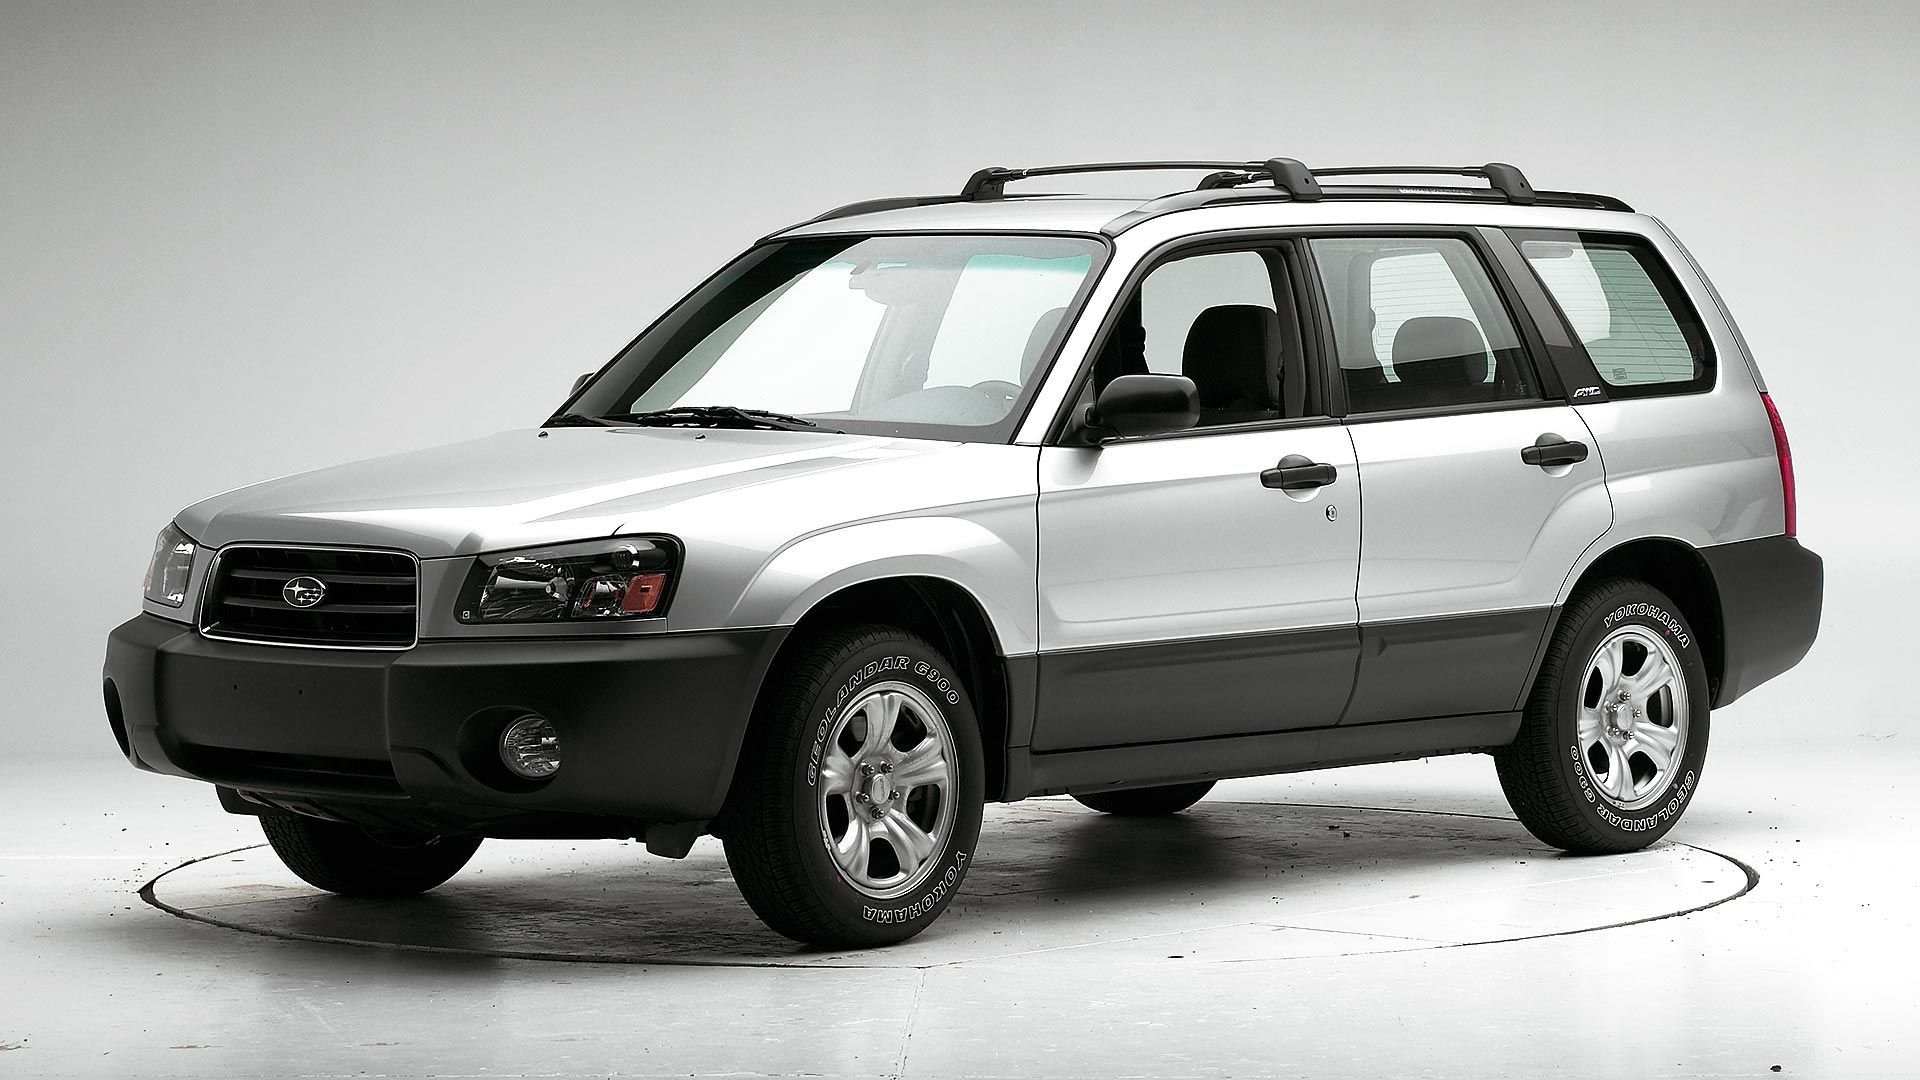 2004 Subaru Forester 4-door SUV